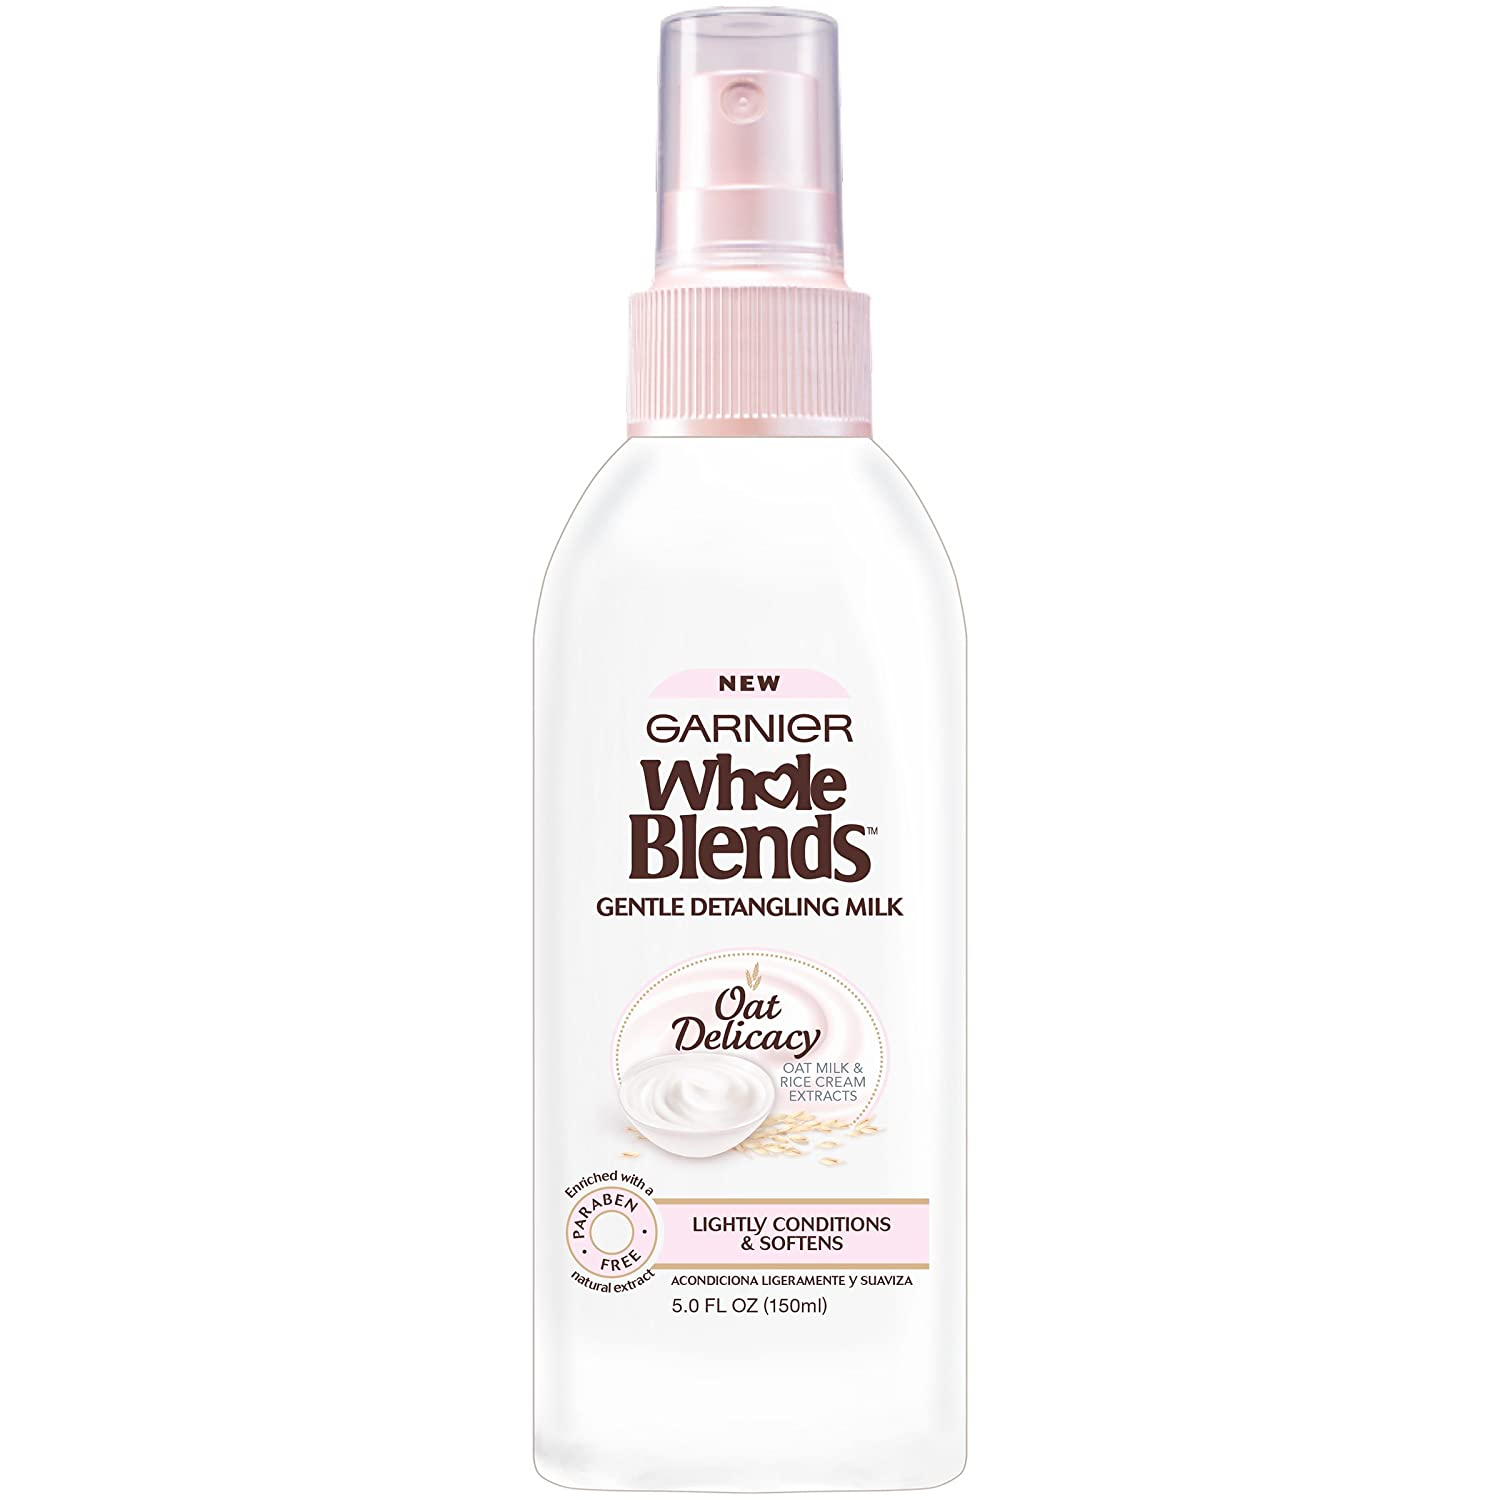 Garnier Whole Blends Gentle Detangling Hair Milk Oat Delicacy, 5 fl. oz. L' Oreal - Hair Care 603084543854